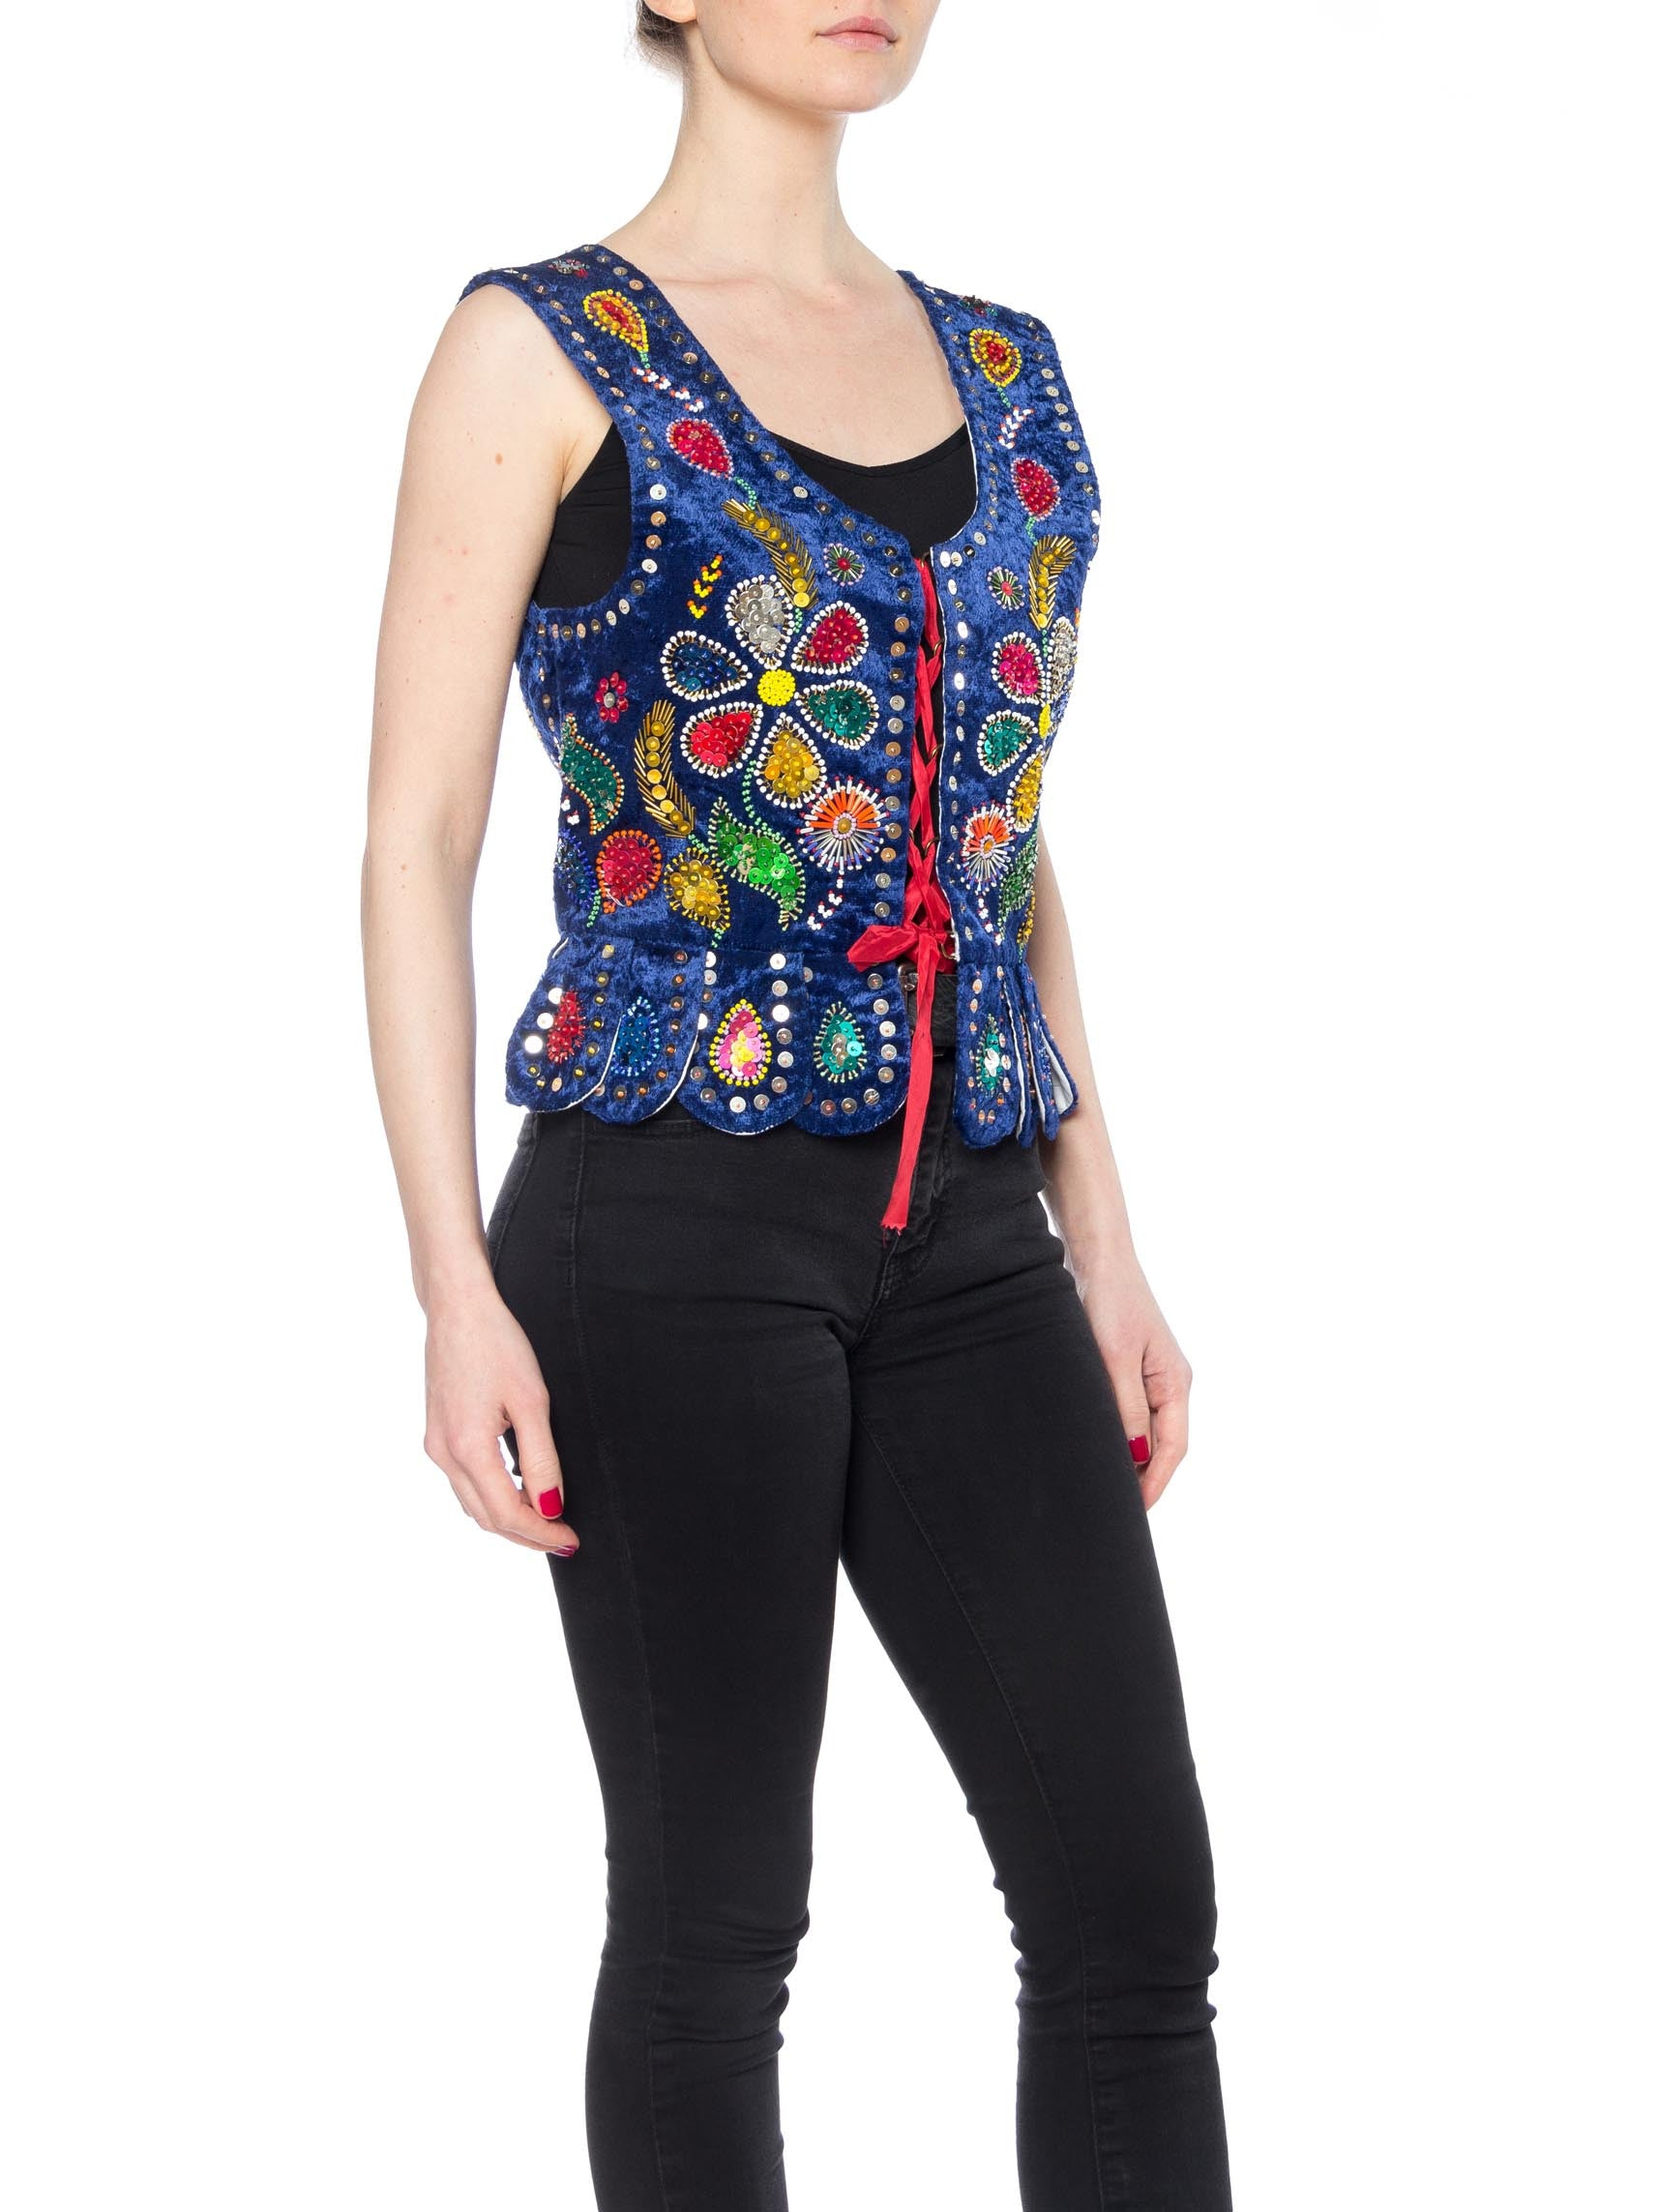 1970S Blue Cotton Velvet Boho Vest With Lacing, Floral Sequins And Beading